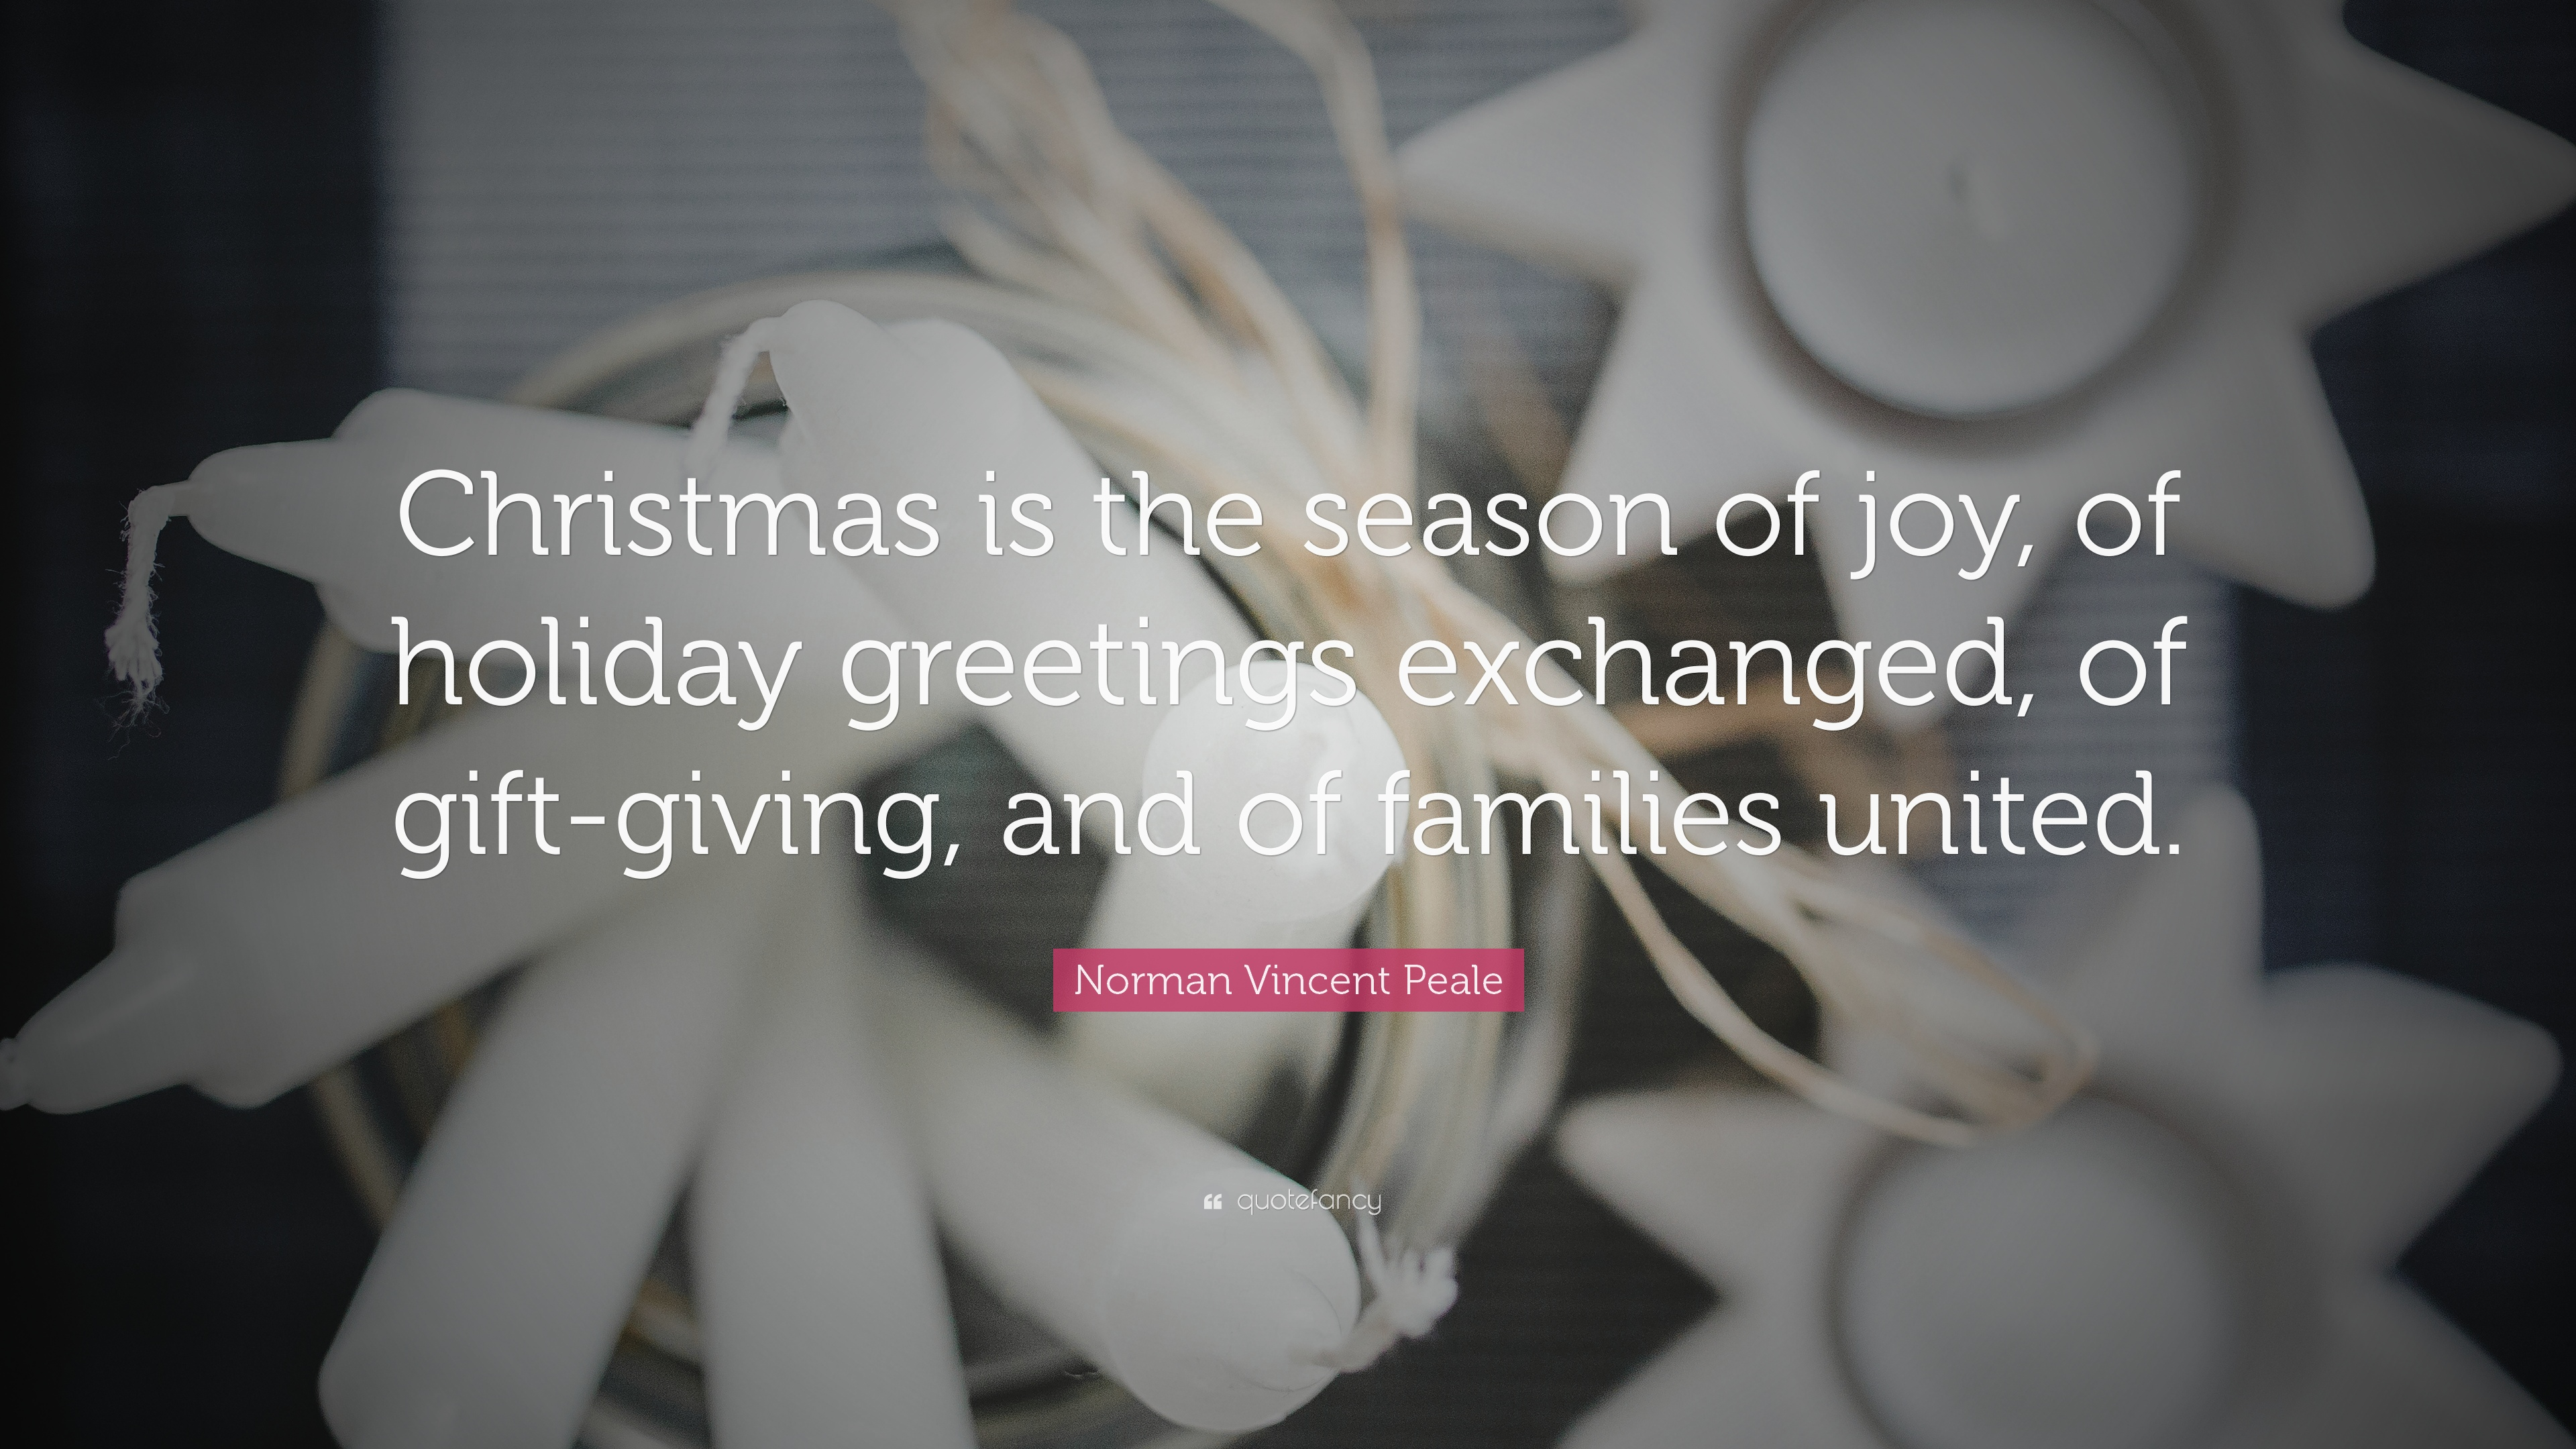 Norman vincent peale quote christmas is the season of joy of norman vincent peale quote christmas is the season of joy of holiday greetings kristyandbryce Image collections